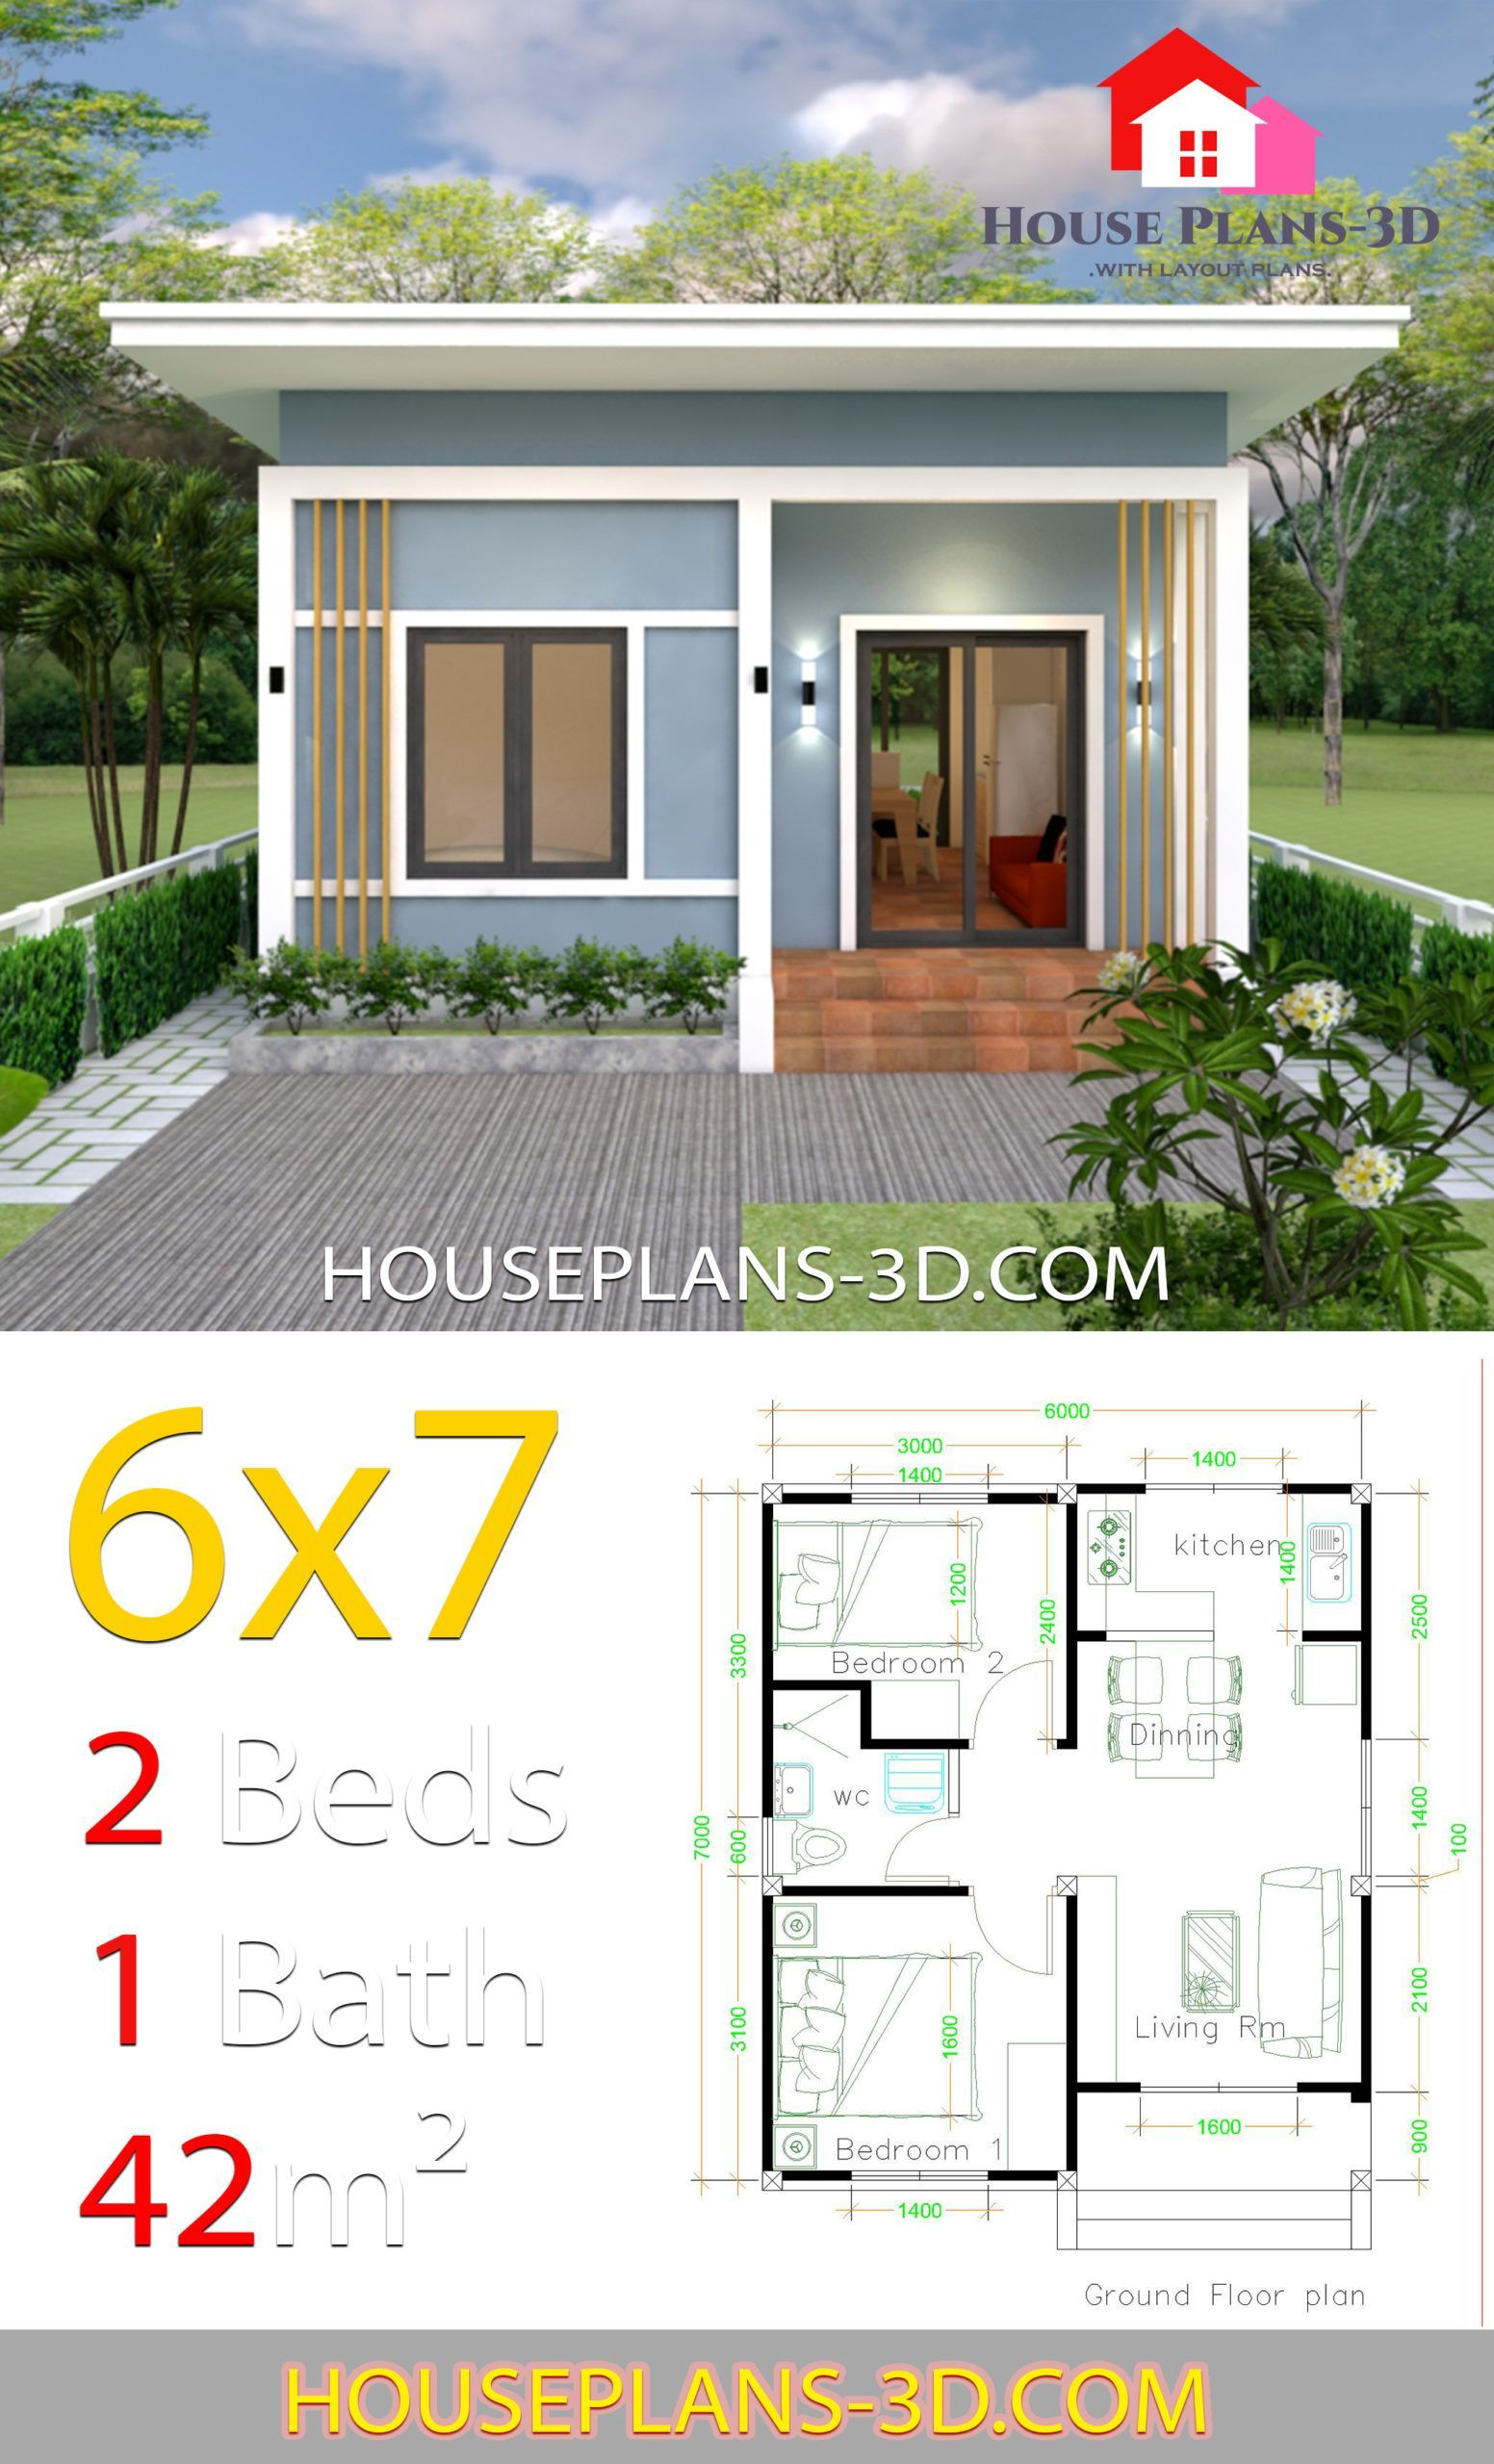 Simple House Plans 6x7 With 2 Bedrooms Shed Roof in 2020 ...